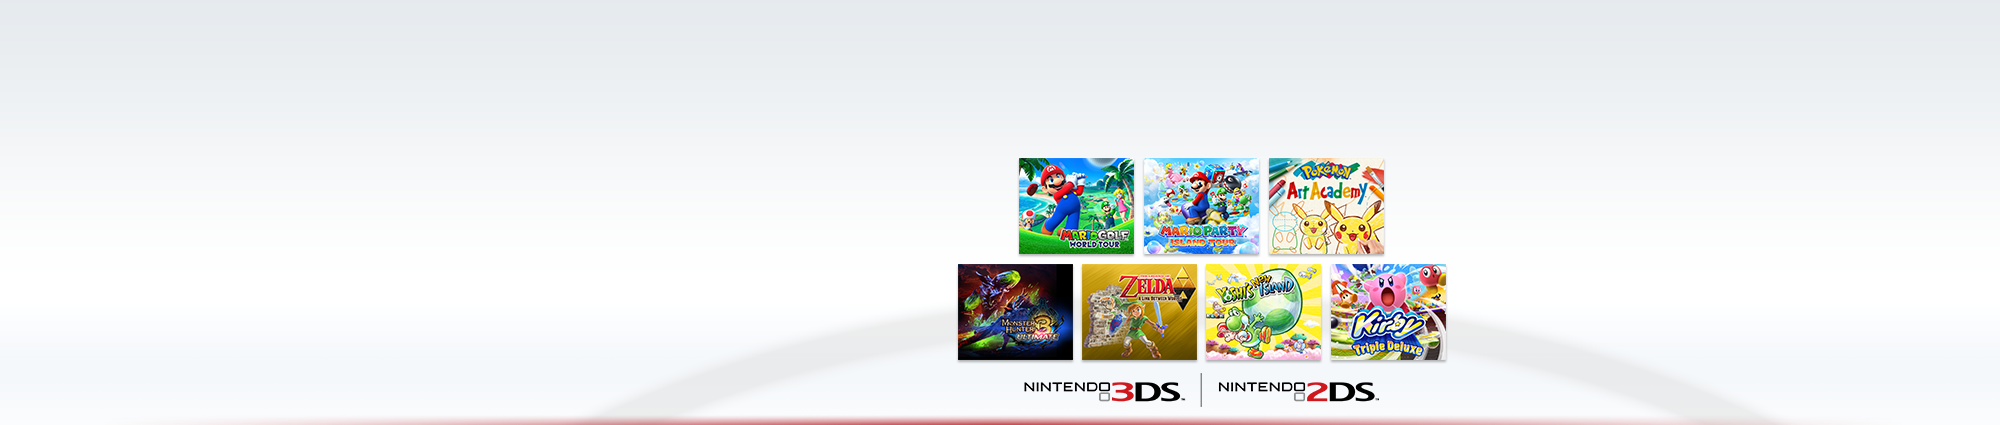 Nintendo 3DS Winter 2014 Bonus Game Promotion